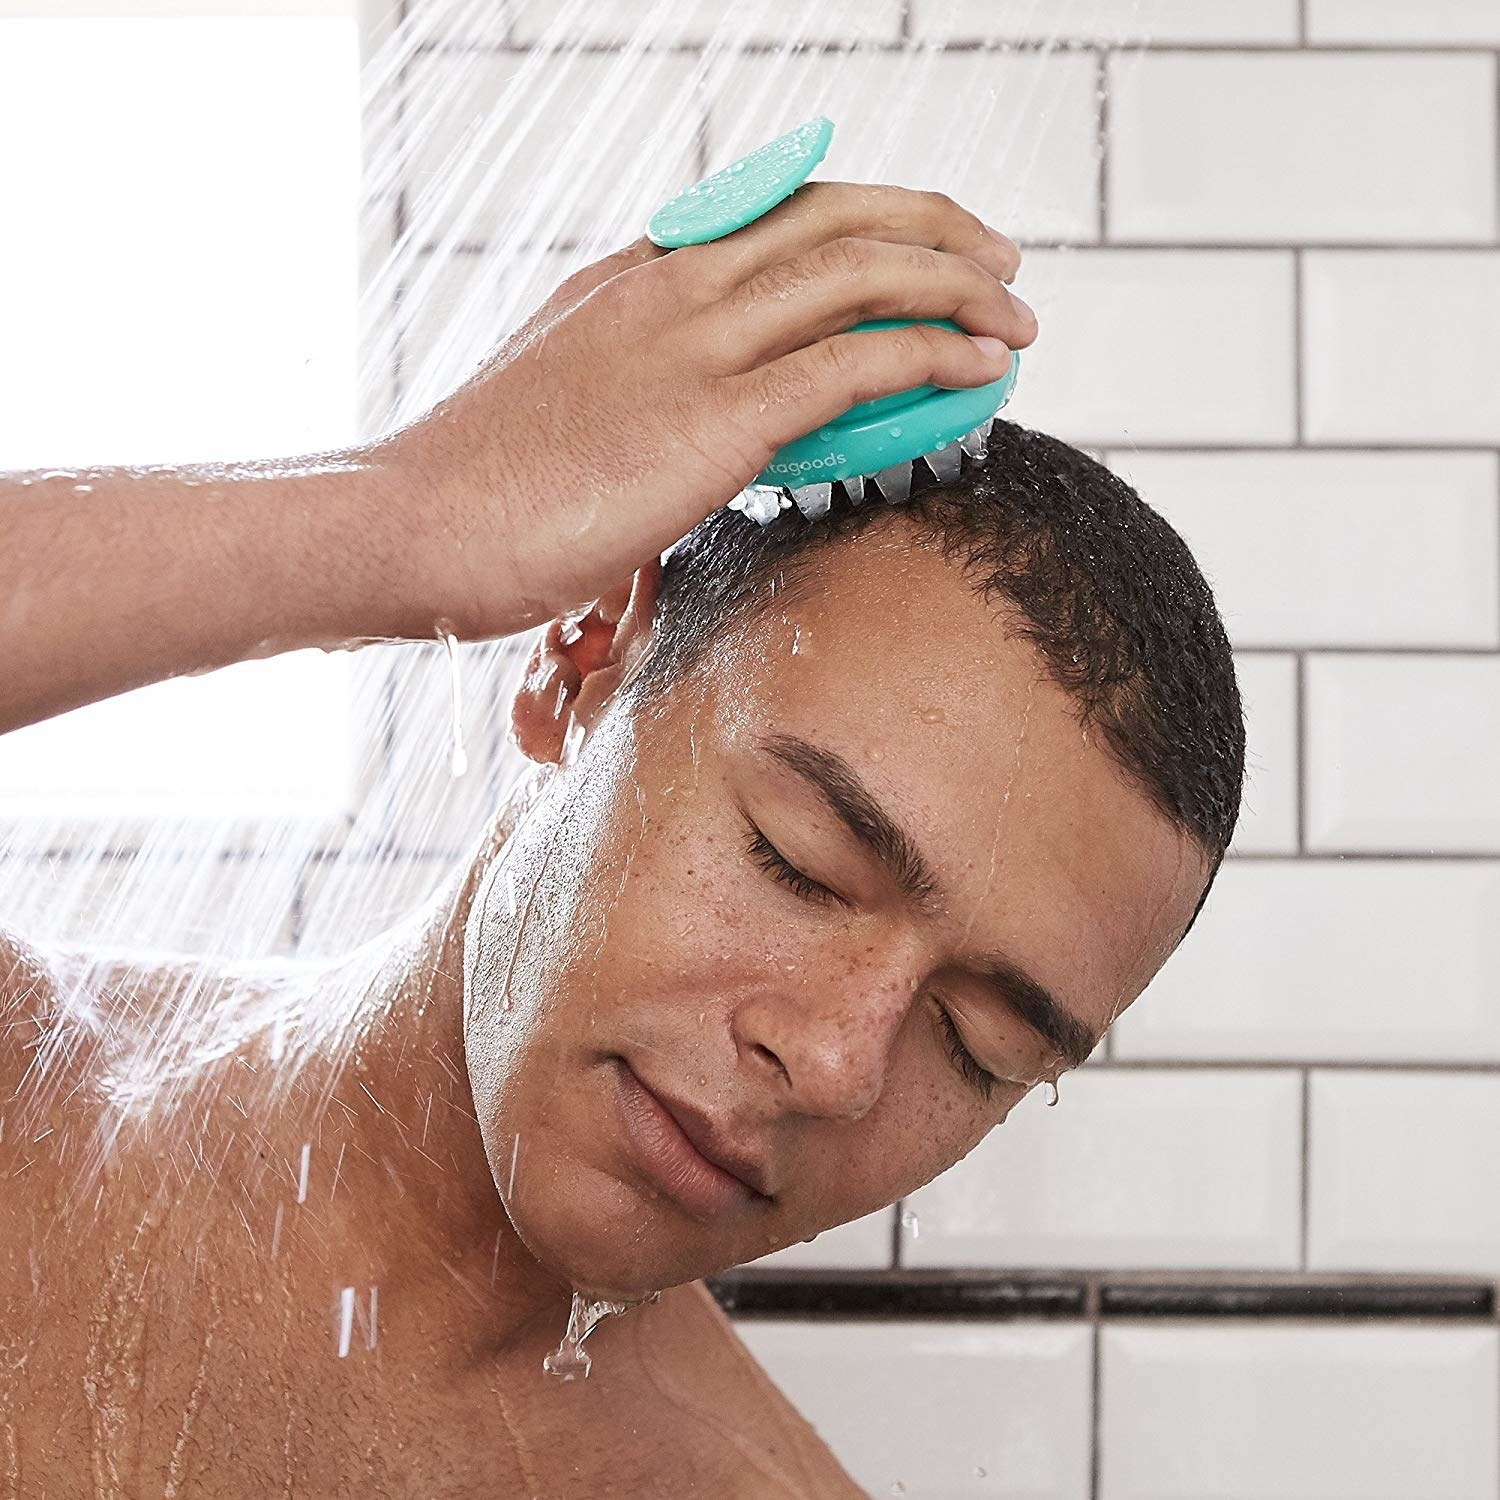 A person using the vibrating head massager under the shower